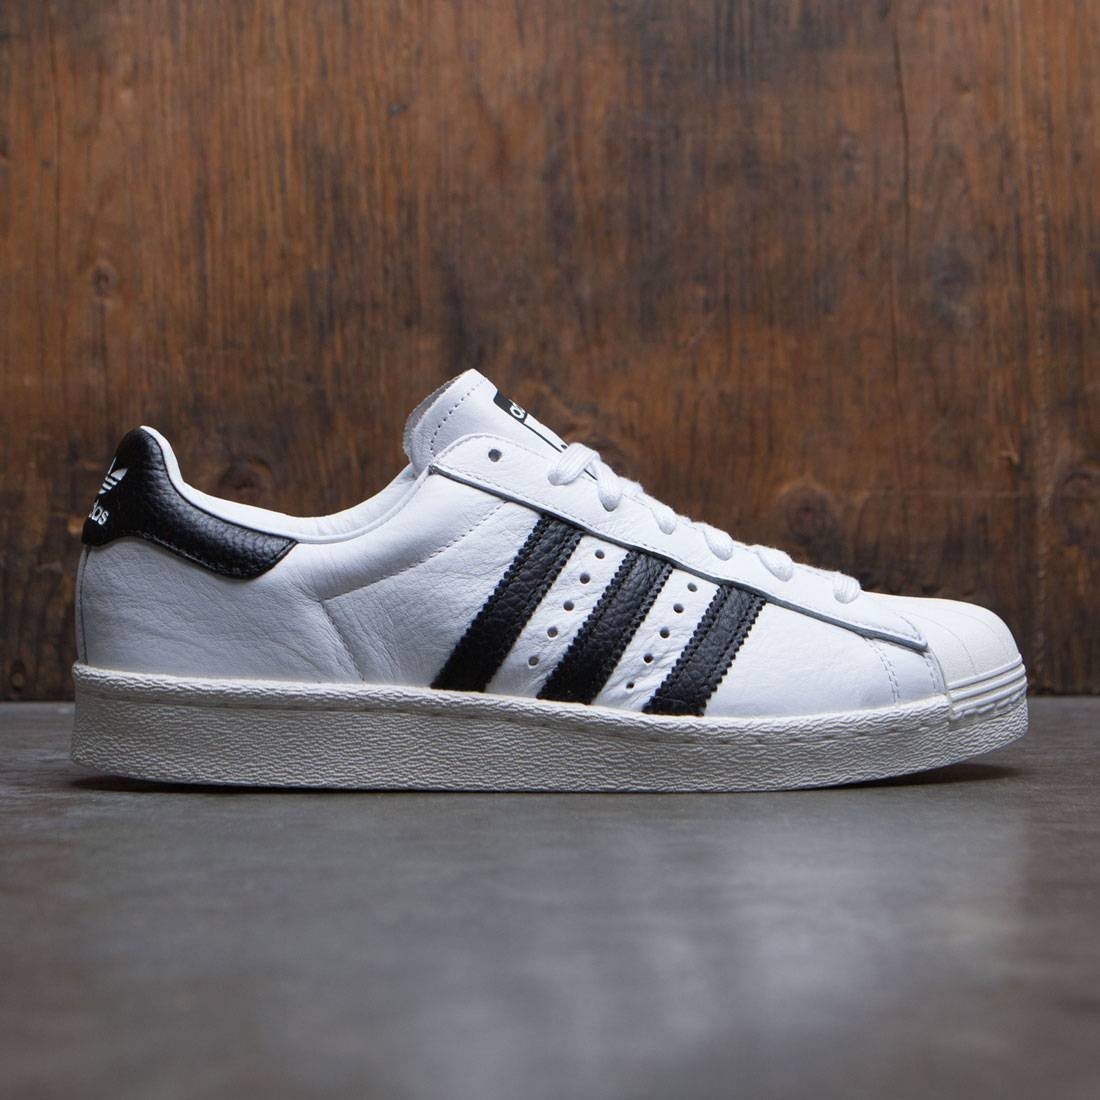 adidas superstar boost shoes men's